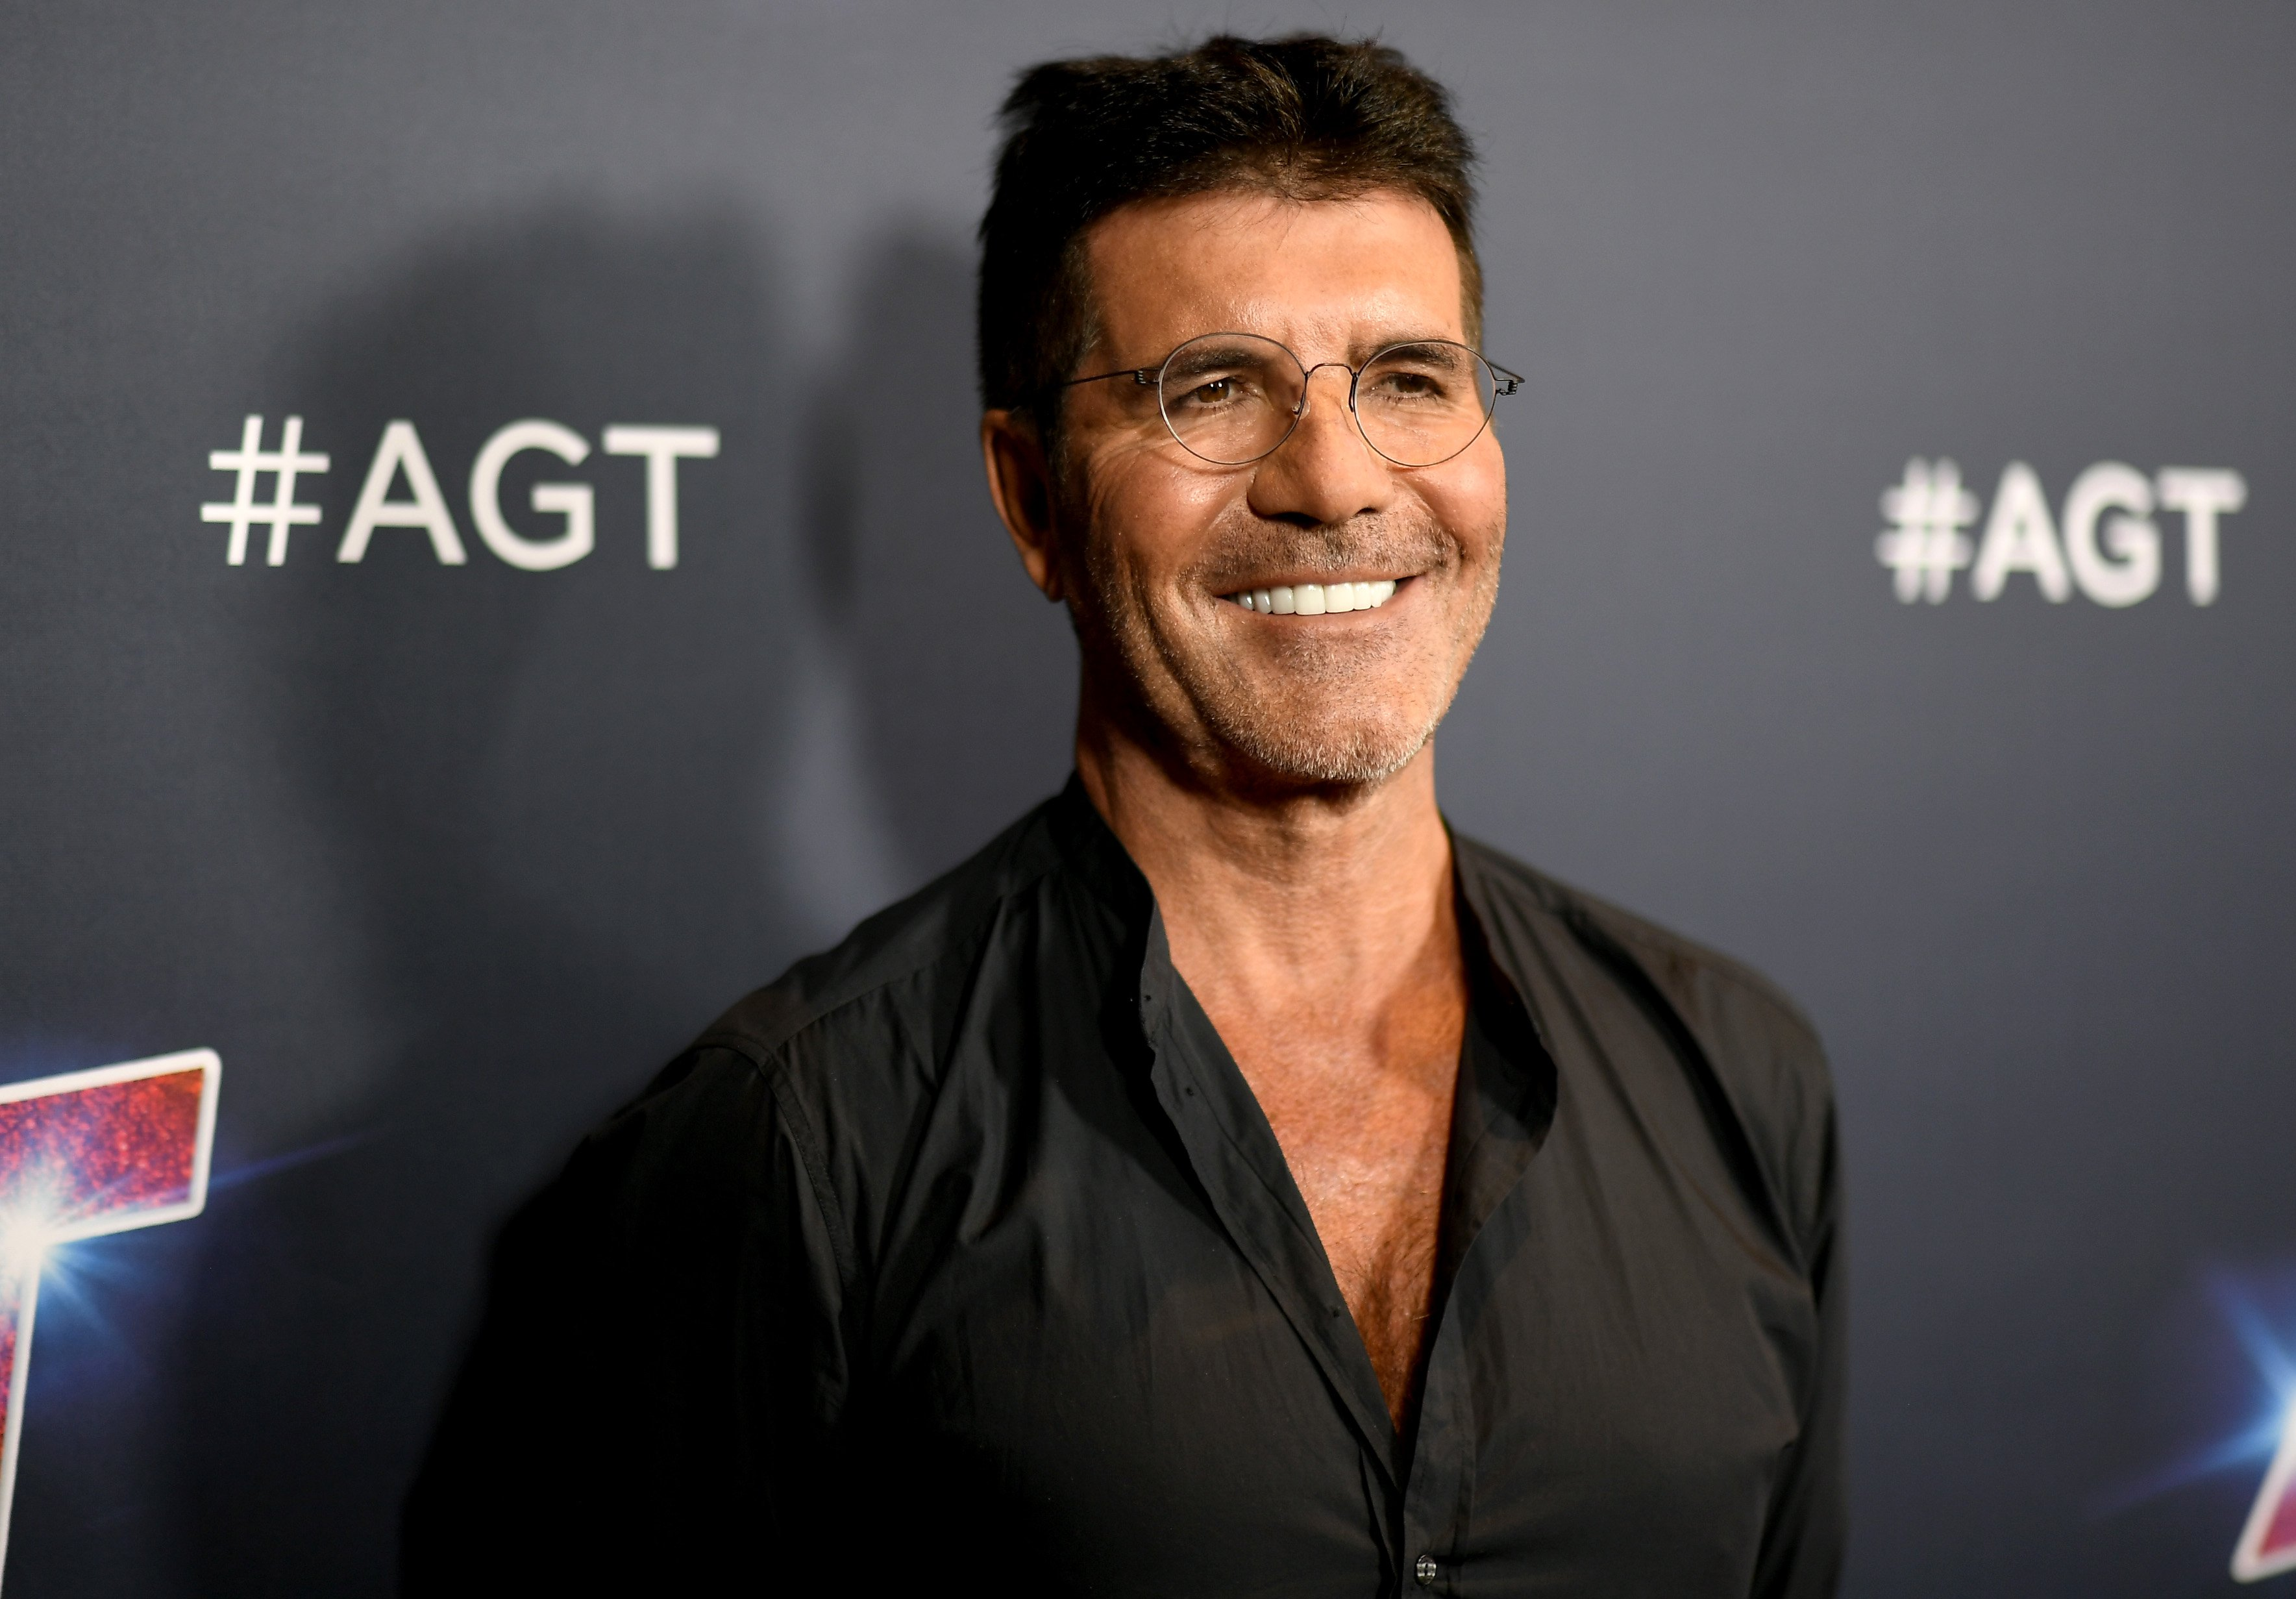 """Simon Cowell attends """"America's Got Talent"""" Season 14 Live Show Red Carpet on September 17, 2019, in Hollywood, California. 